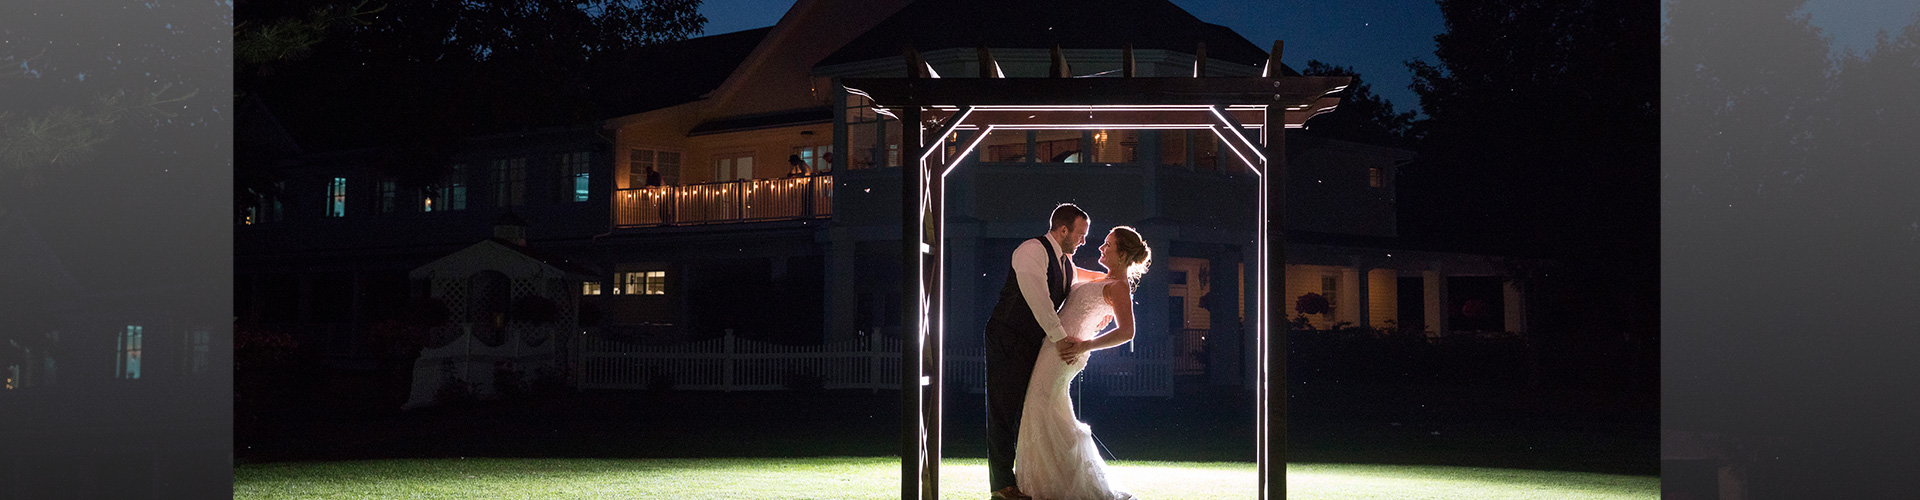 A newlywed couple poses for a picture in front of a clubhouse at Butternut Farm